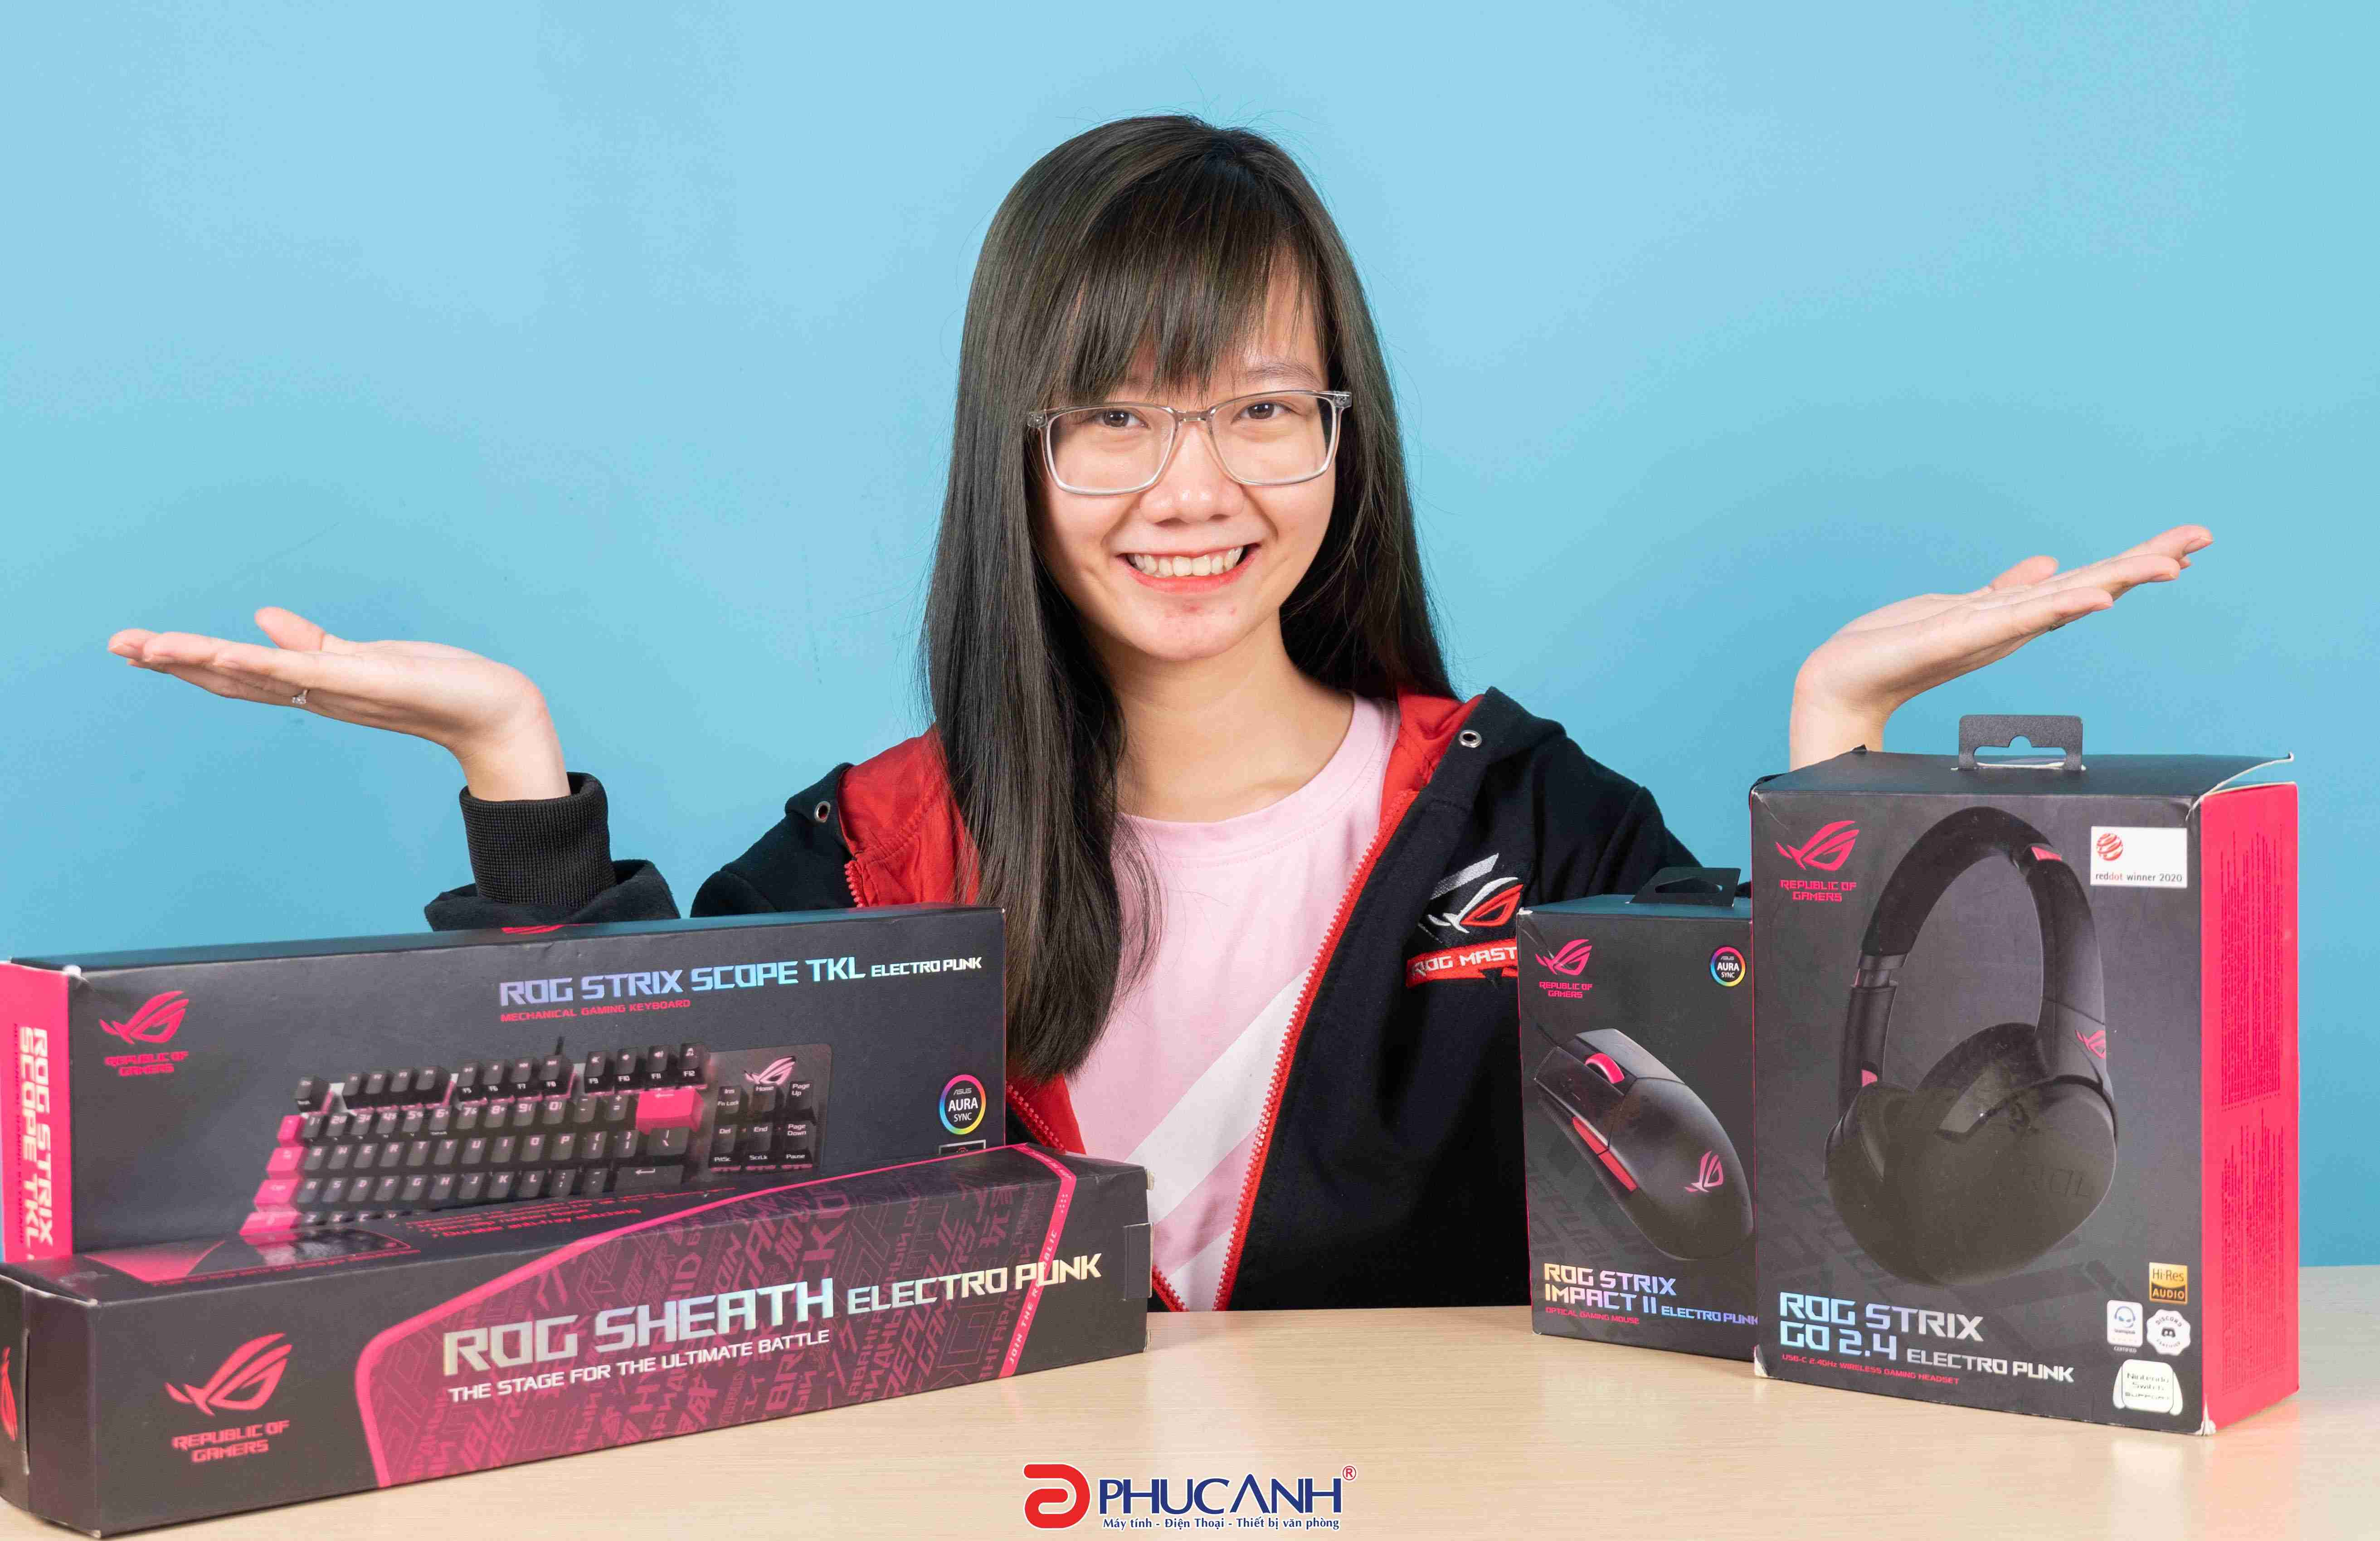 [Review] Combo BlackPink Asus Rog Electro Punk